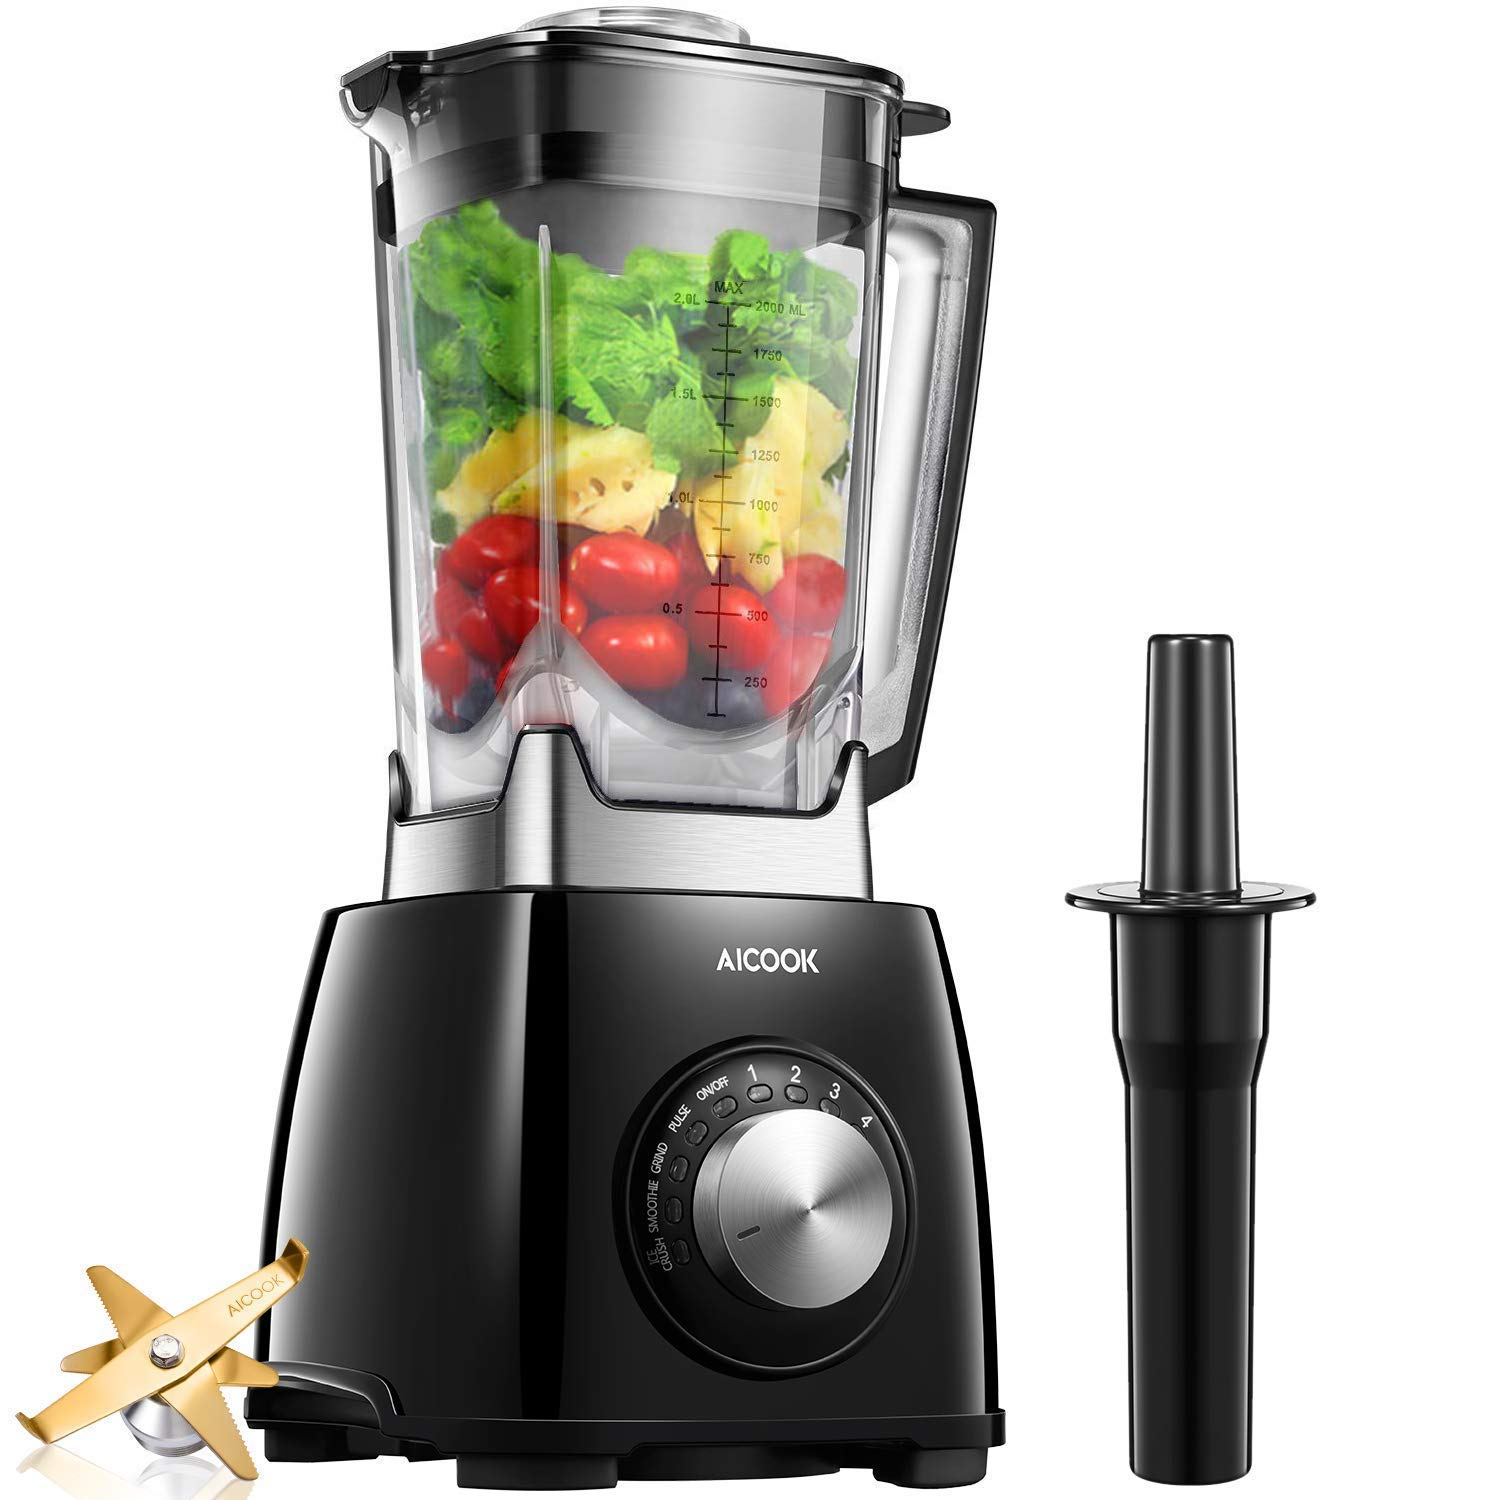 Aicook Smoothie Blender, 1450W Professional Countertop Blender with 72oz Jar, 4 Speeds and 4 Presets Self-Clean Ice Smoothie Maker for Home and Commercial Using